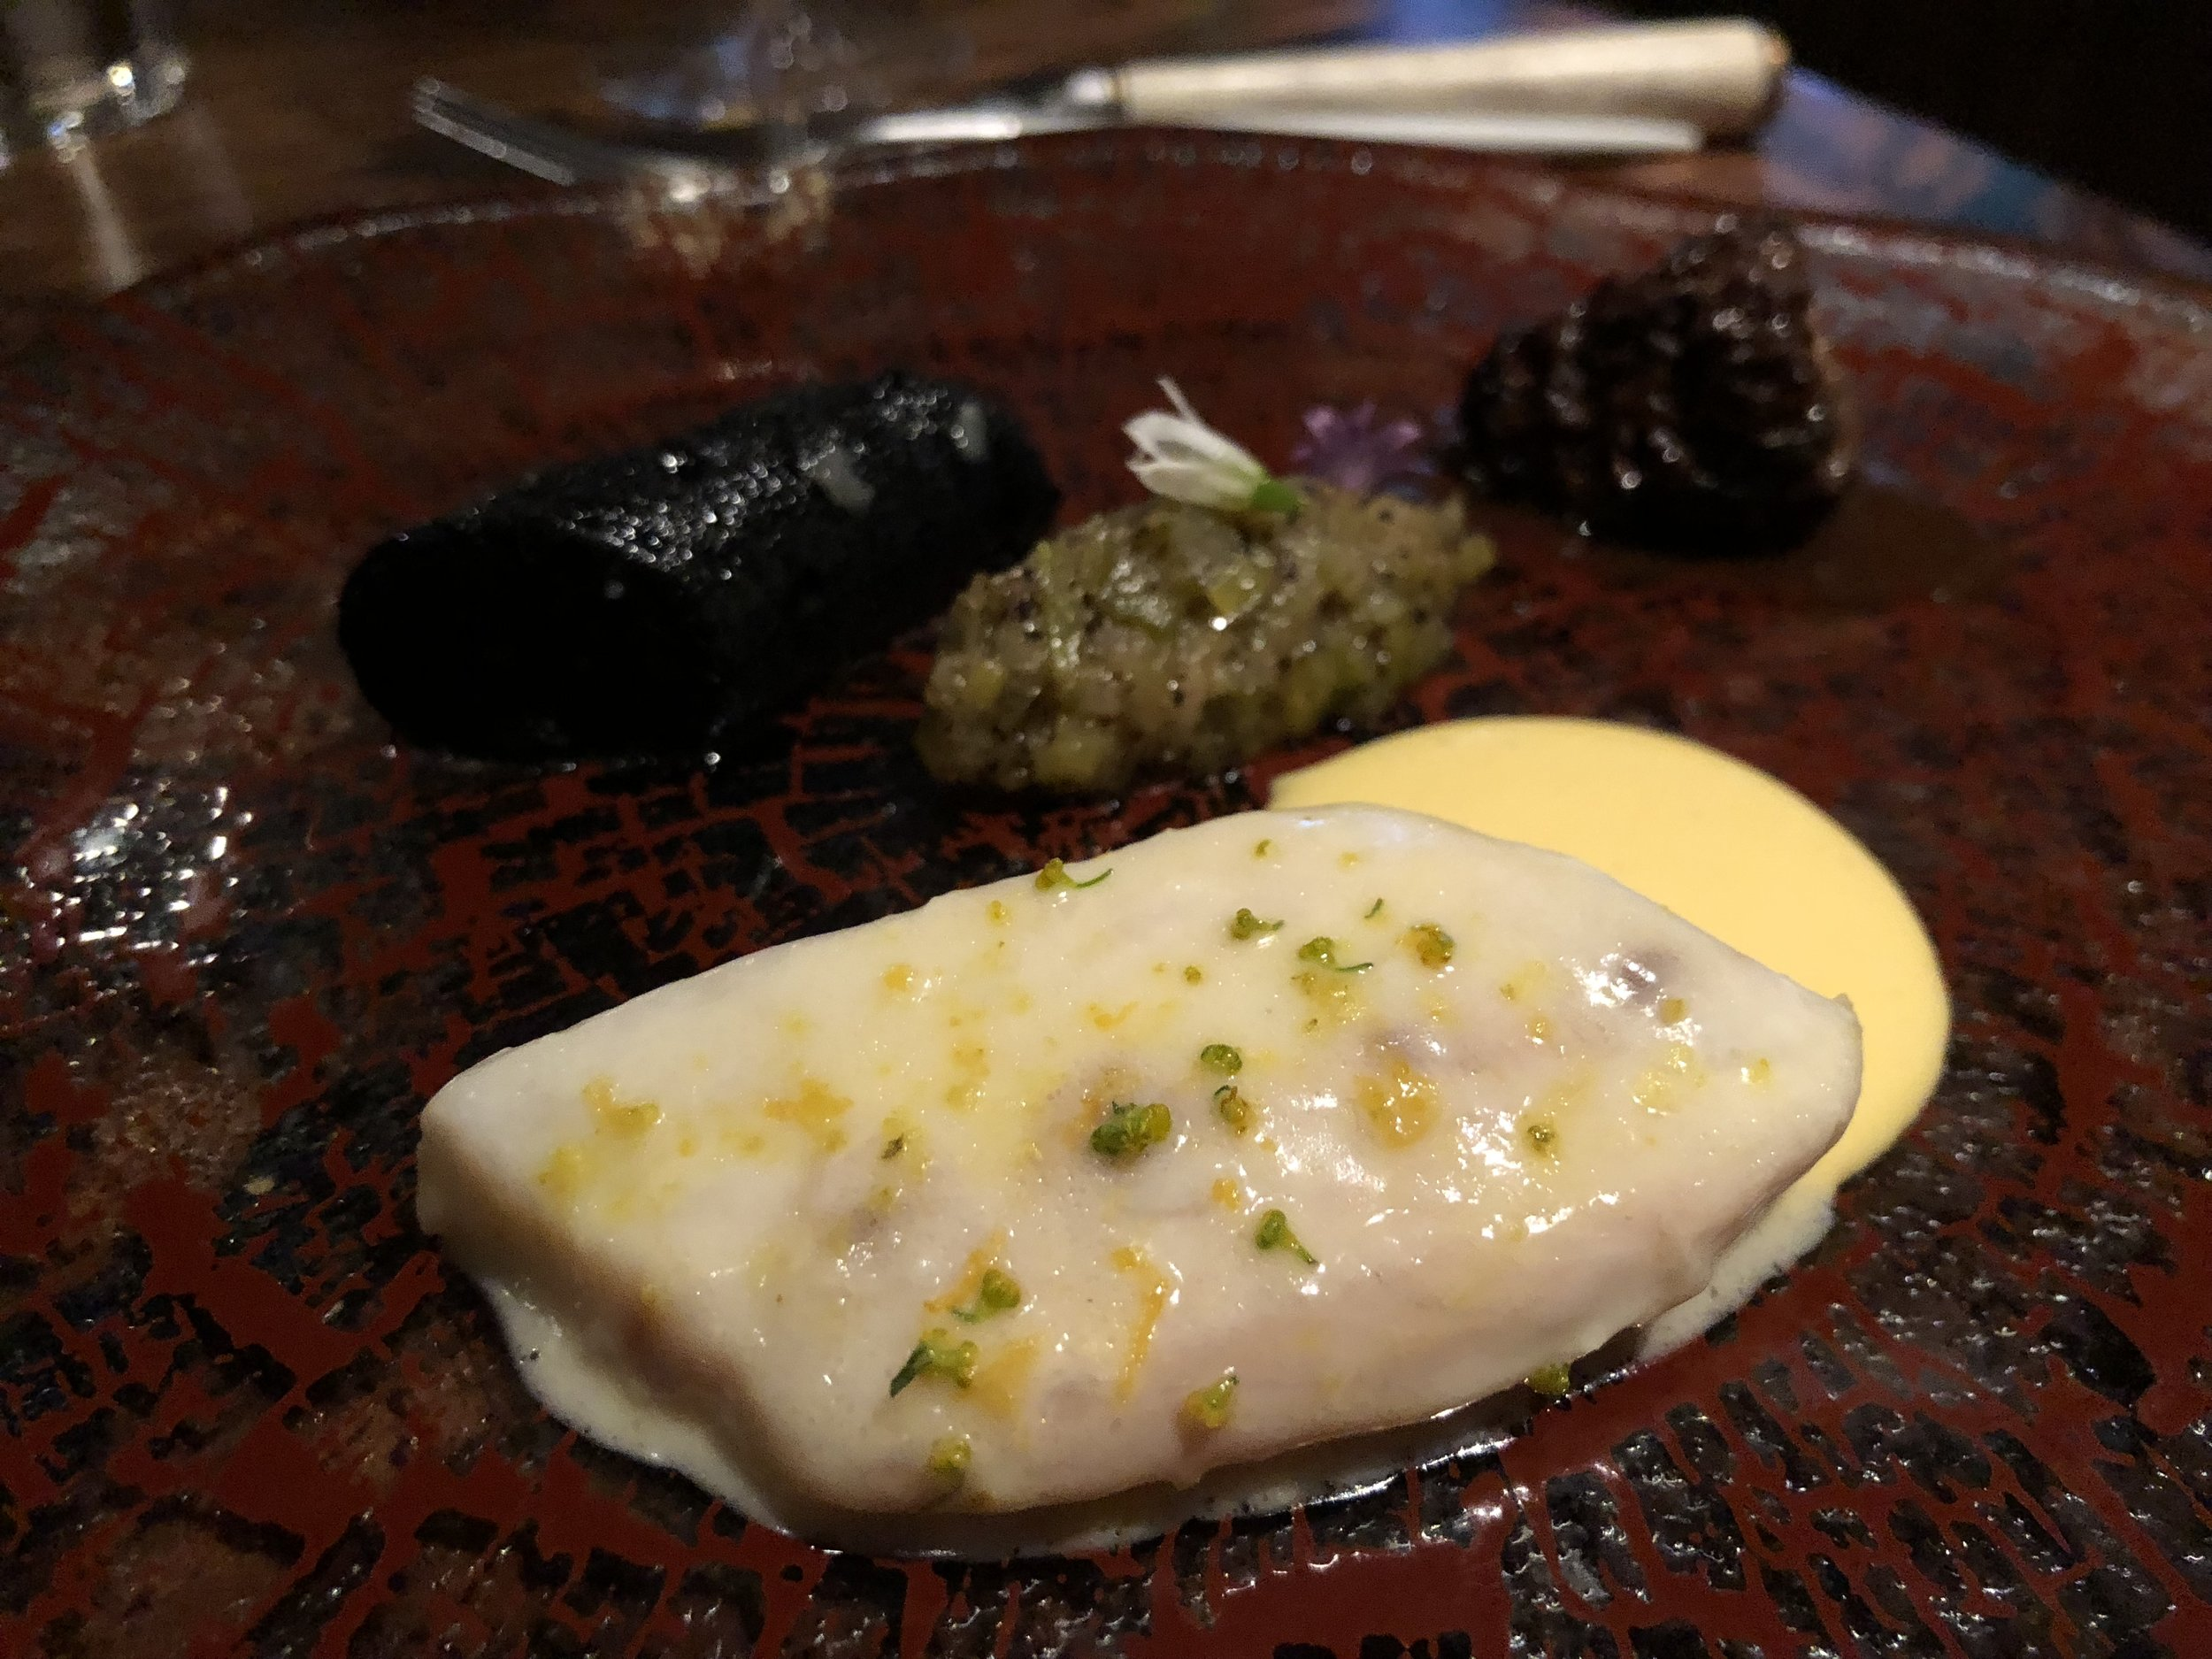 """To the snowy stillness of soft swimming creatures - Striped bass, Boudin Noir, & MorelThe best part of this course was that you got to choose your knife from a box of assorted knives a waiter brought around. I always loved '""""choose your own adventure"""" books, but choose your own cutlery was nearly as fun.You may have noticed that there is no meat on this menu. Once we had this course, I wasn't missing it at all. The sea bass was meaty and so rich. I felt very satisfied, but Jason wouldn't have hated a bit of red meat."""